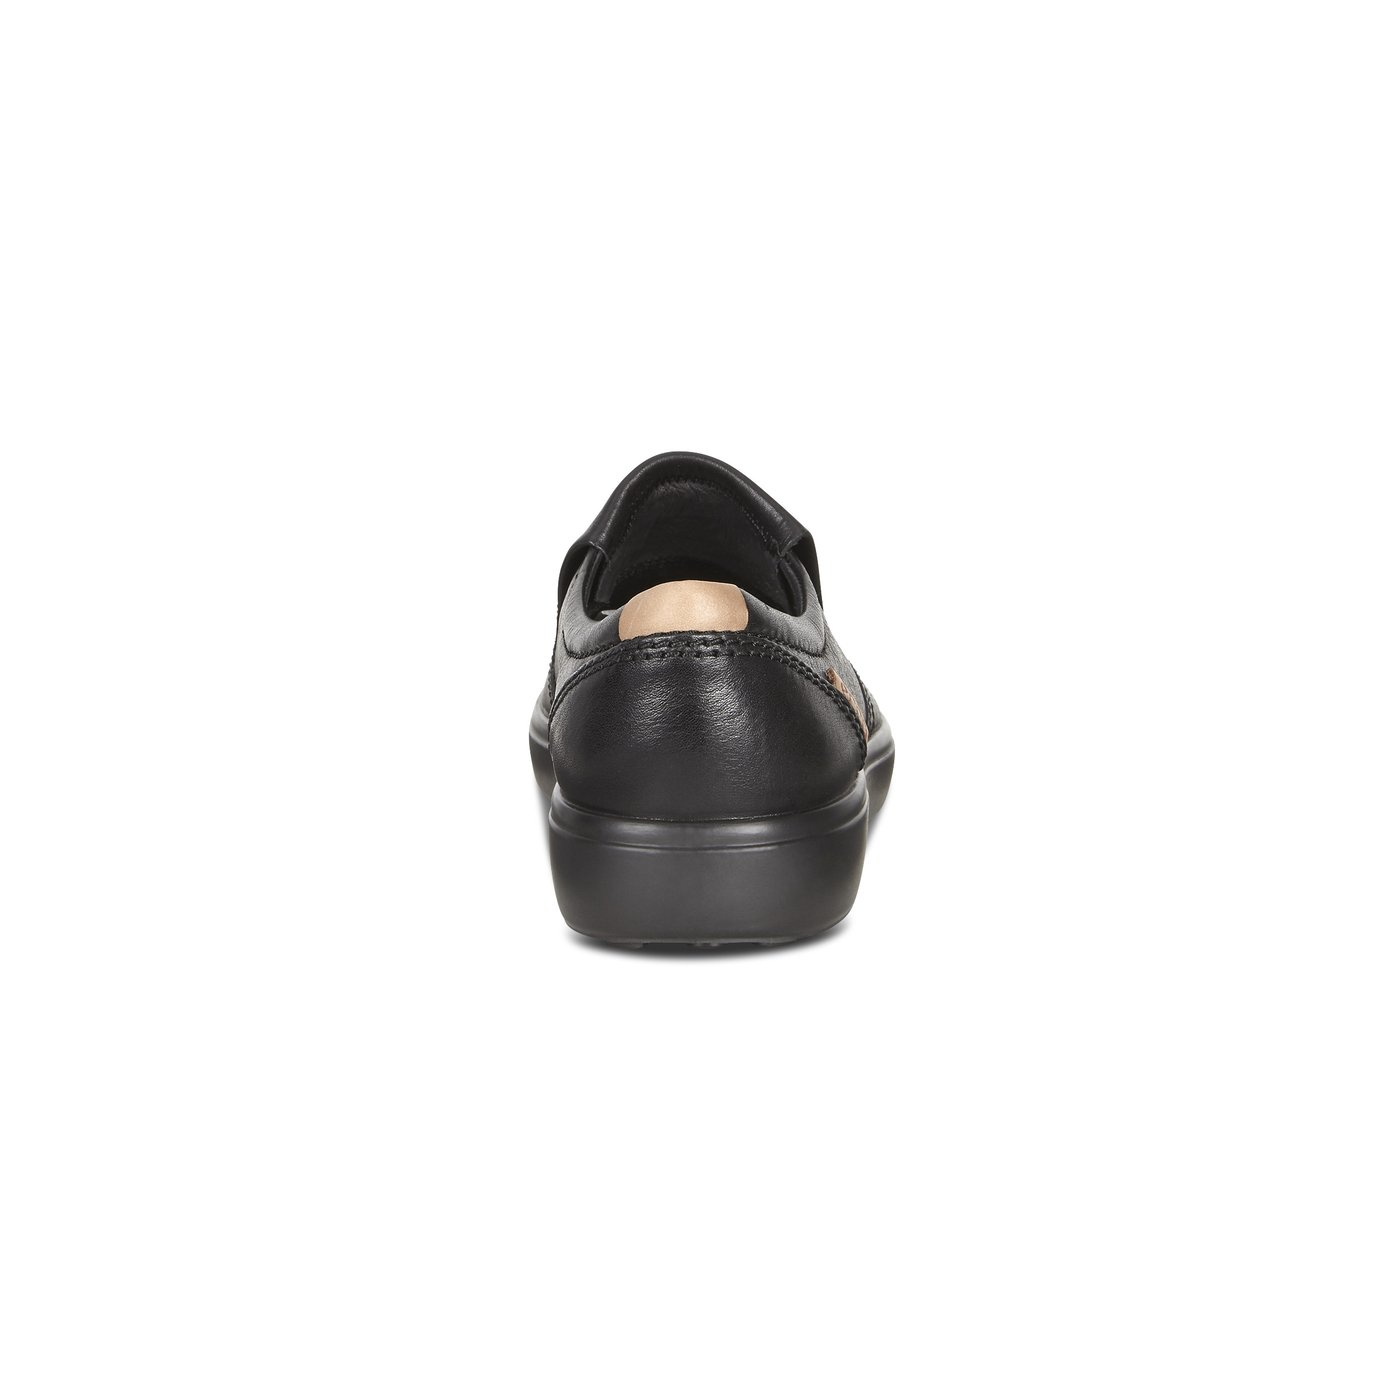 ECCO SOFT7 Mens Slip On